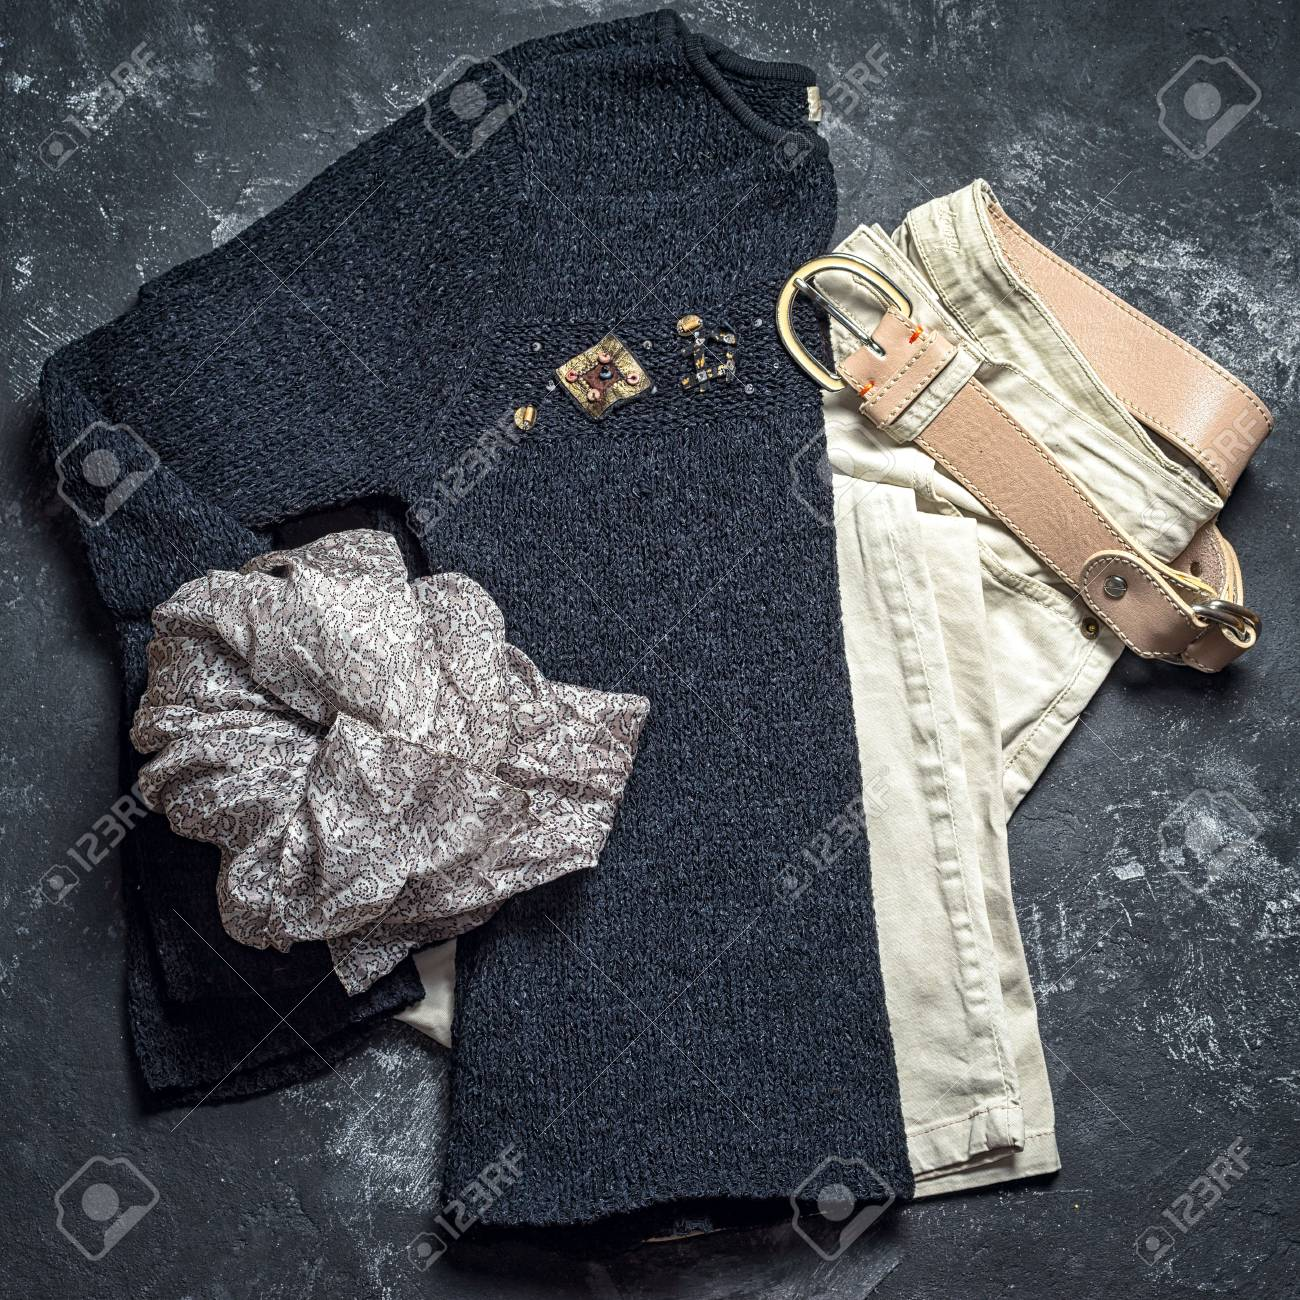 764de07fc6 Flat Lay Top View Outfit Of Casual Woman. Black Sweater